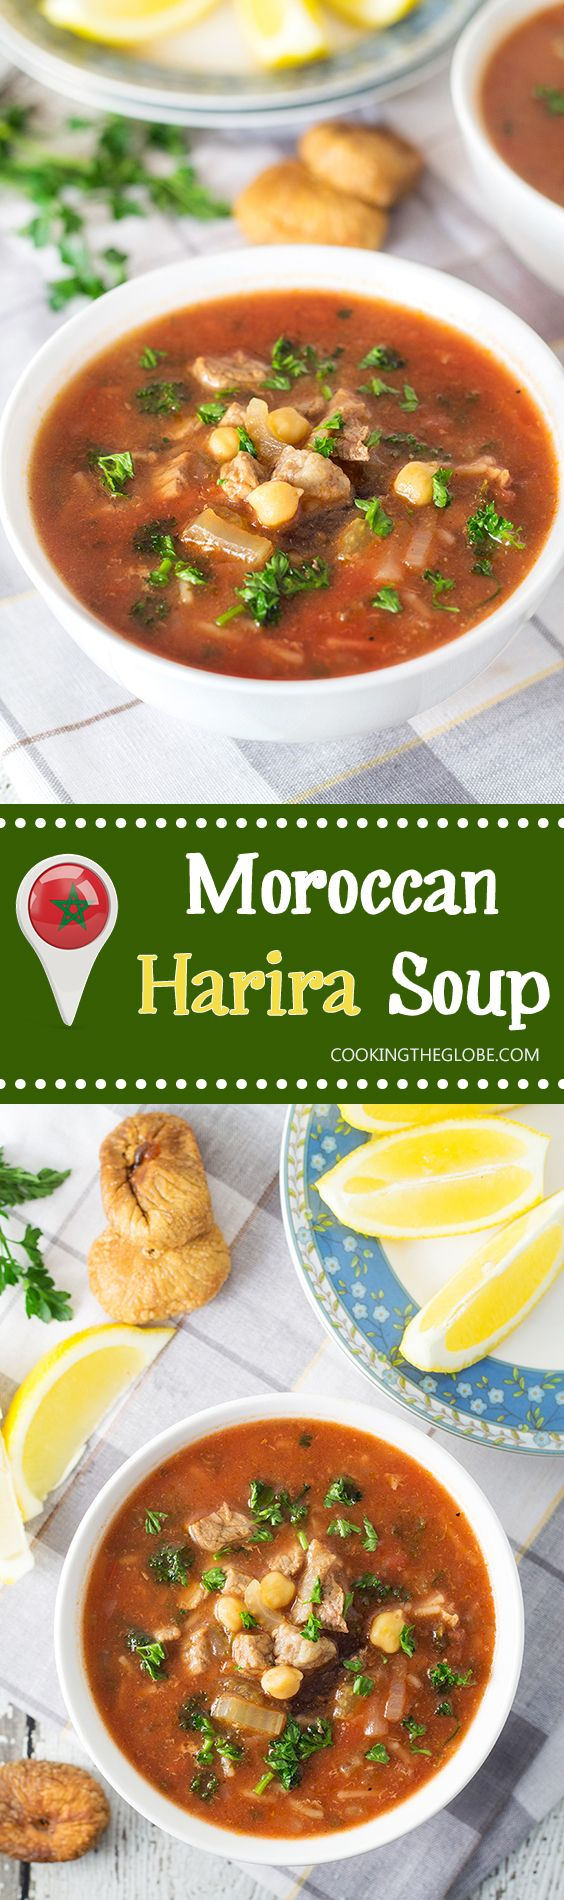 Harira soup comes from Morocco and combines beef, chickpeas, plenty of tomatoes, a few herbs and of course spices! | cookingtheglobe.com